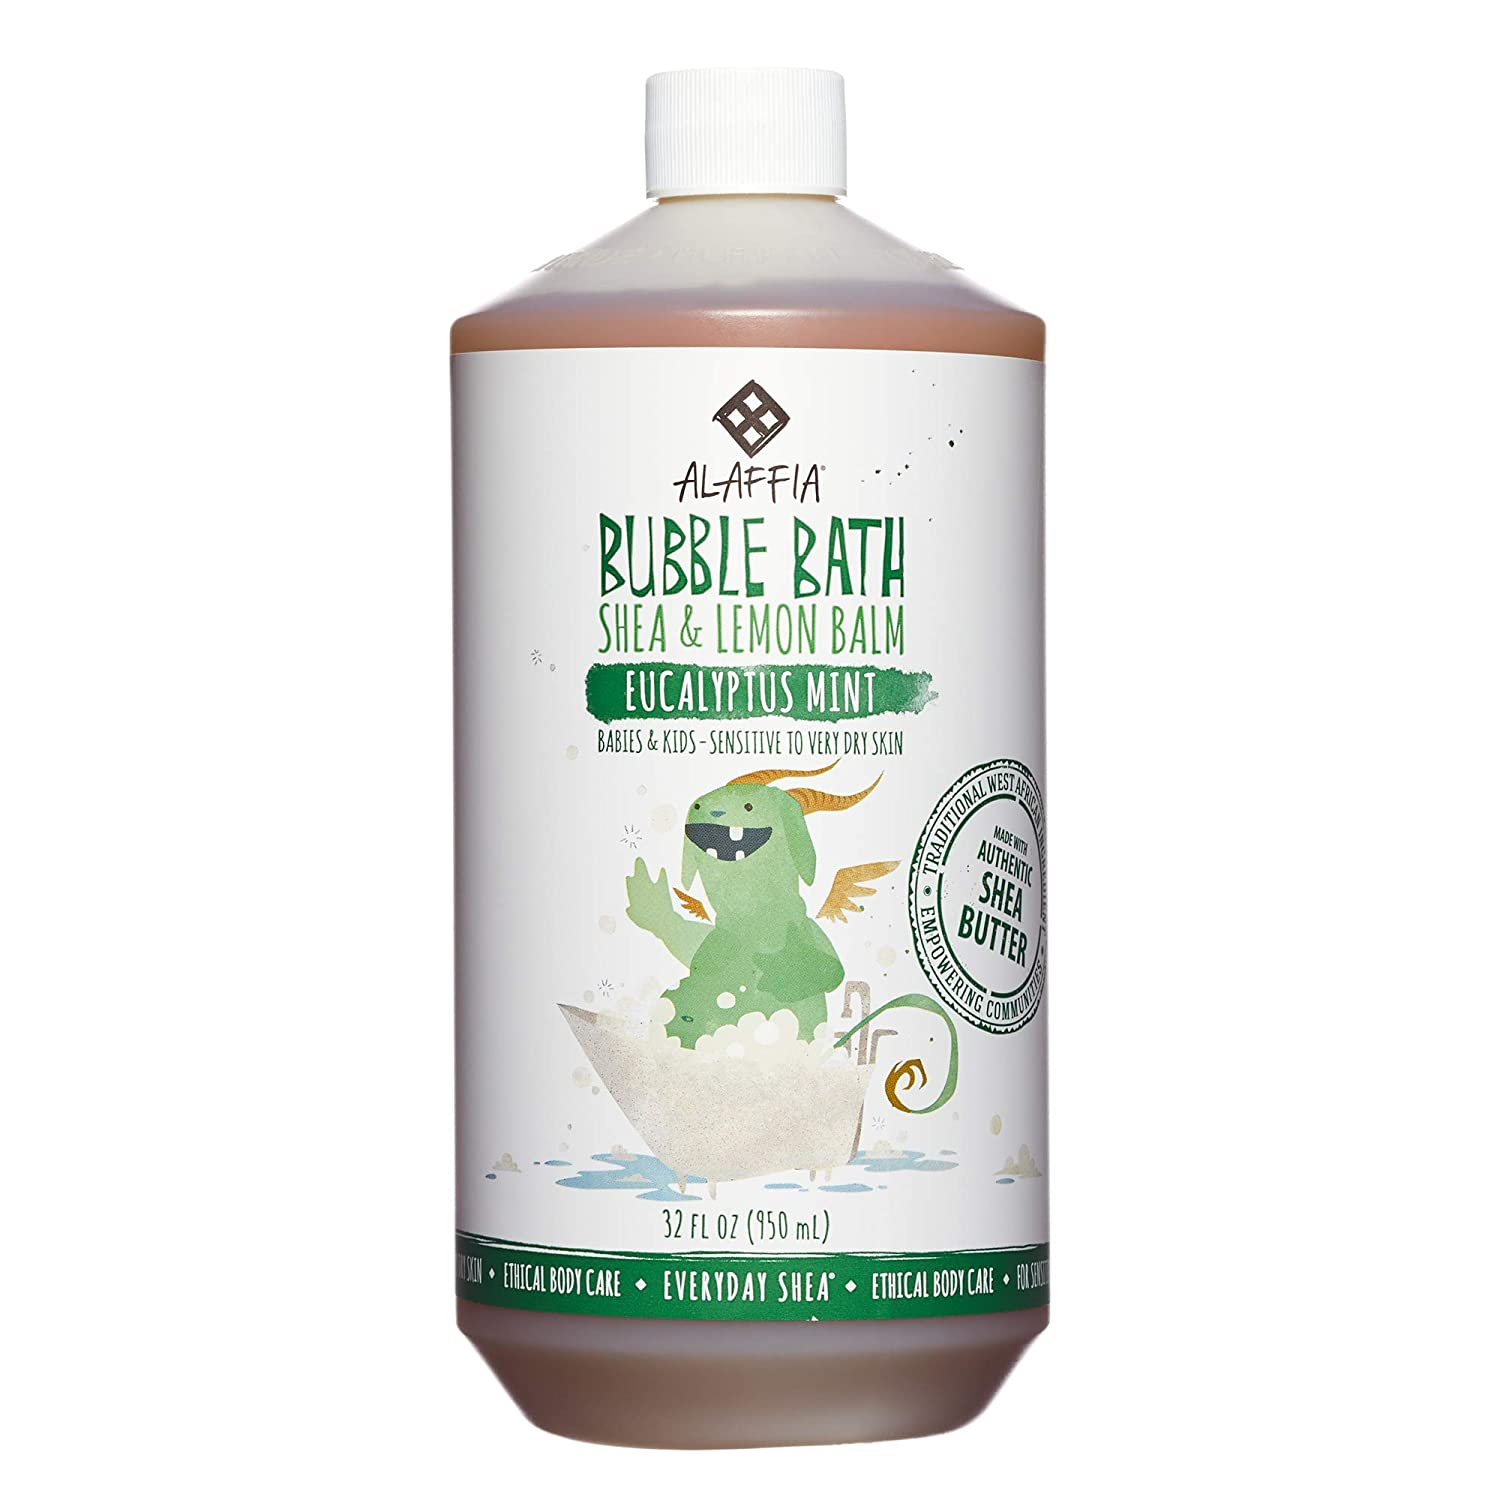 Everyday Shea Bubble Bath for Babies & Kids - Eucalyptus Mint